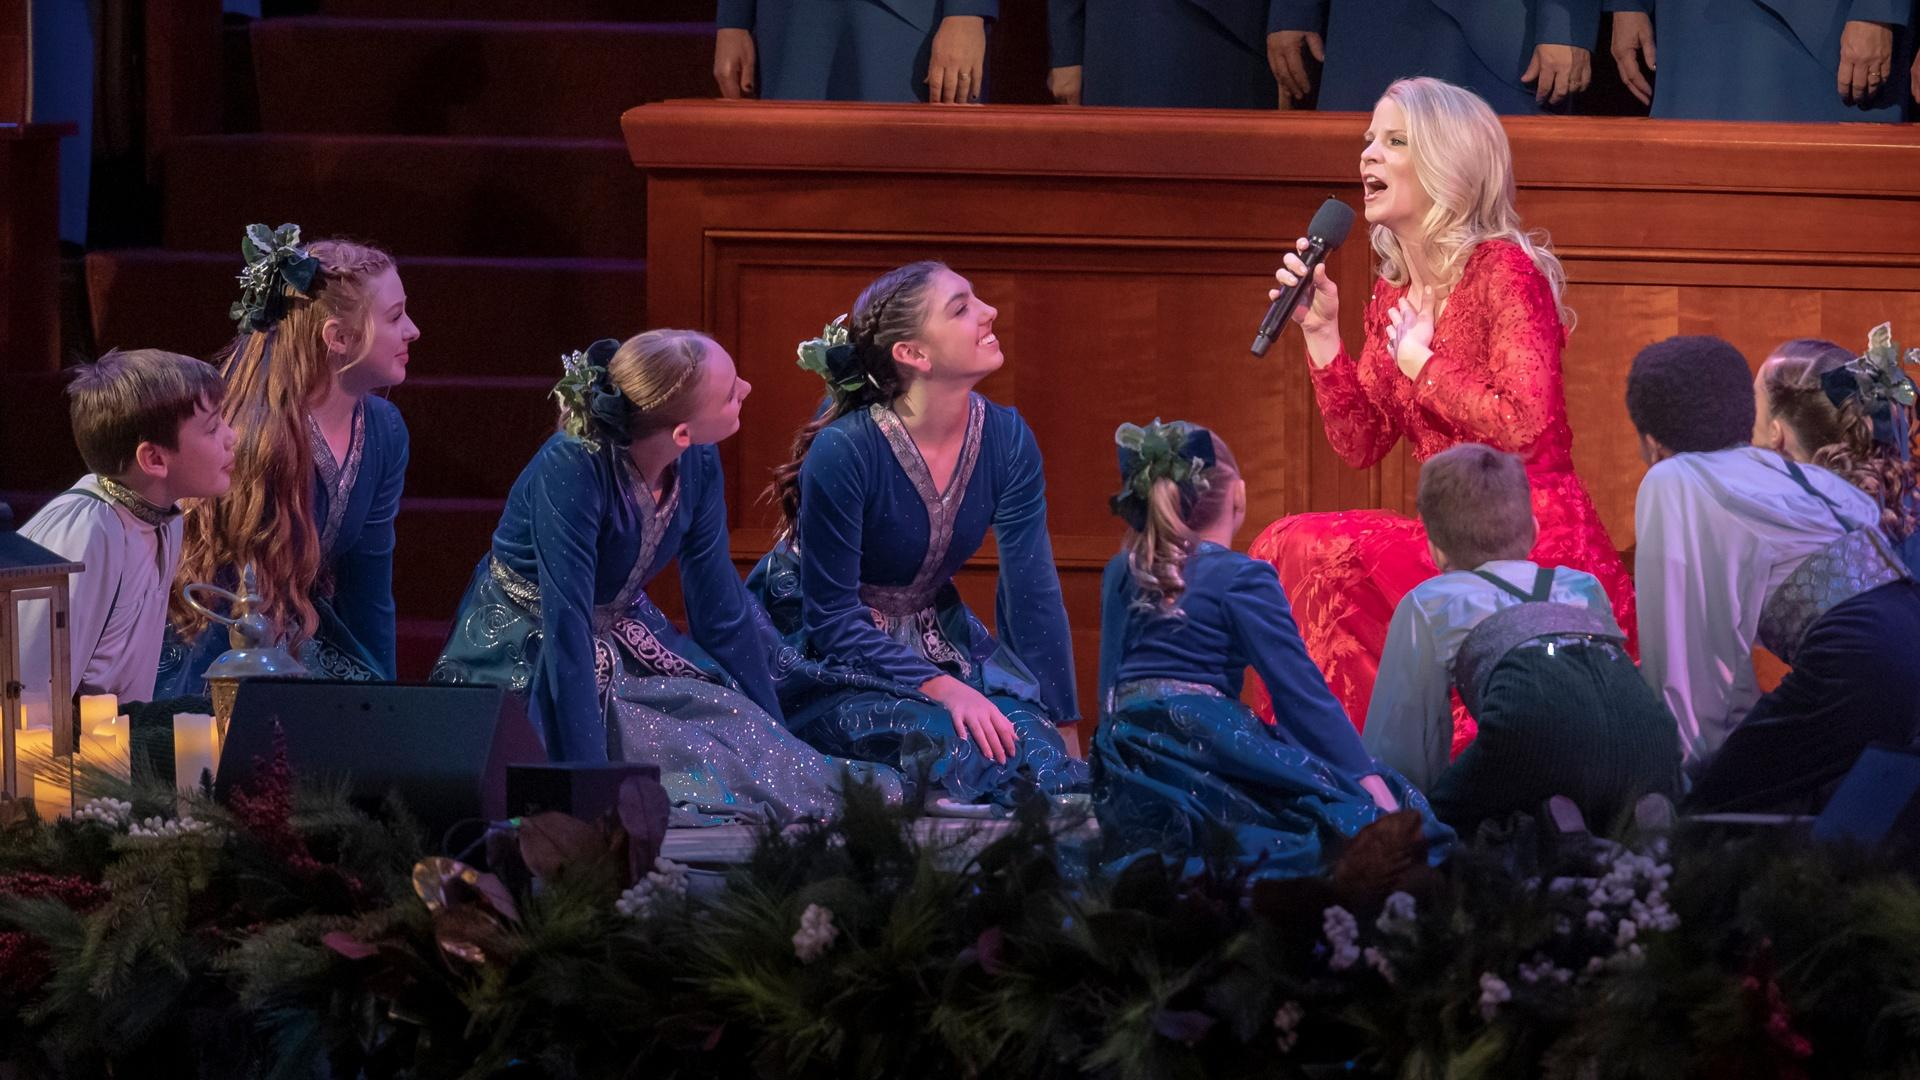 Kristin Chenoweth sings into a microphone amidst the female members of The Tabernacle Choir, who are all dressed in white with single-color scarves.